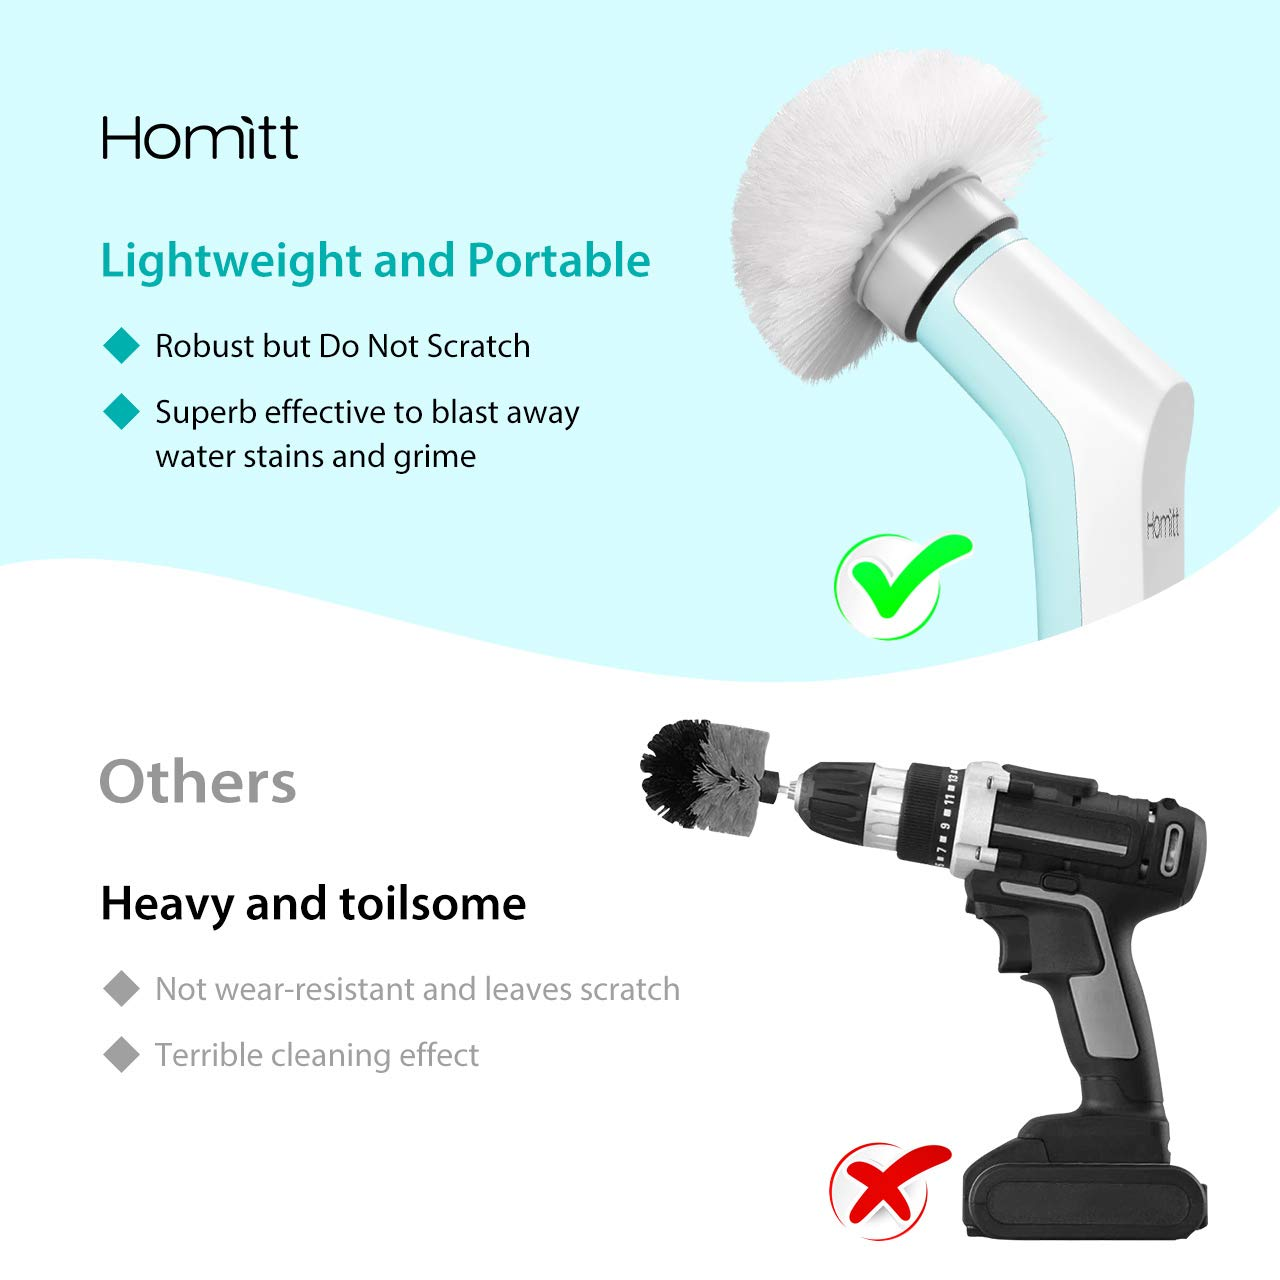 Homitt Electric Spin Scrubber Power Brush Power Scrubber, Cordless and Handheld Bathroom Scrubber with 3 Replaceable Cleaning Brush Heads, High Rotation for Cleaning Shower, Floor, Sink, Tile and Tub by Homitt (Image #2)